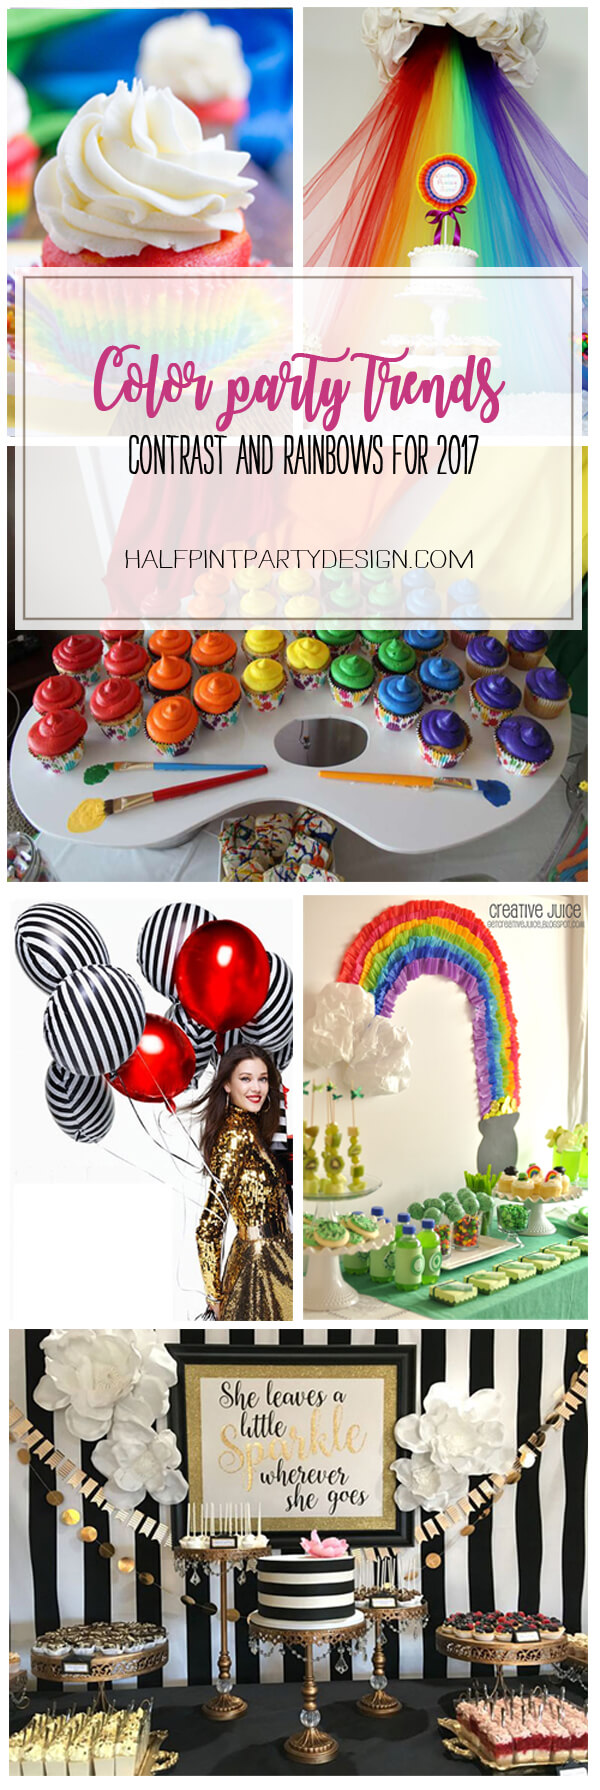 Color Party Trends for 2017 | Halfpint Design